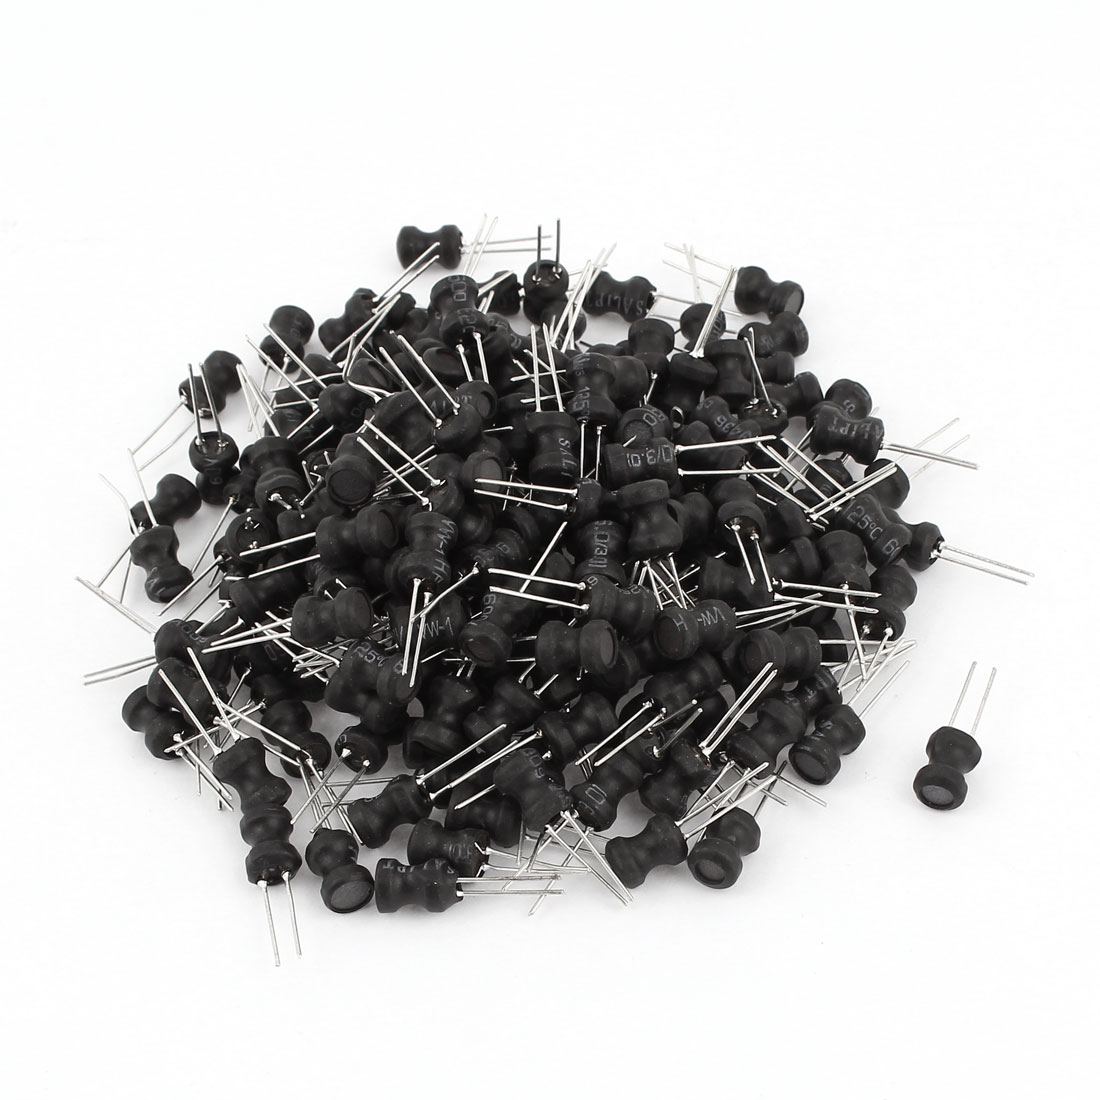 200Pcs Through Hole 3.3uH 1.5A 6x8mm 10% Radial Leads Inductors Black